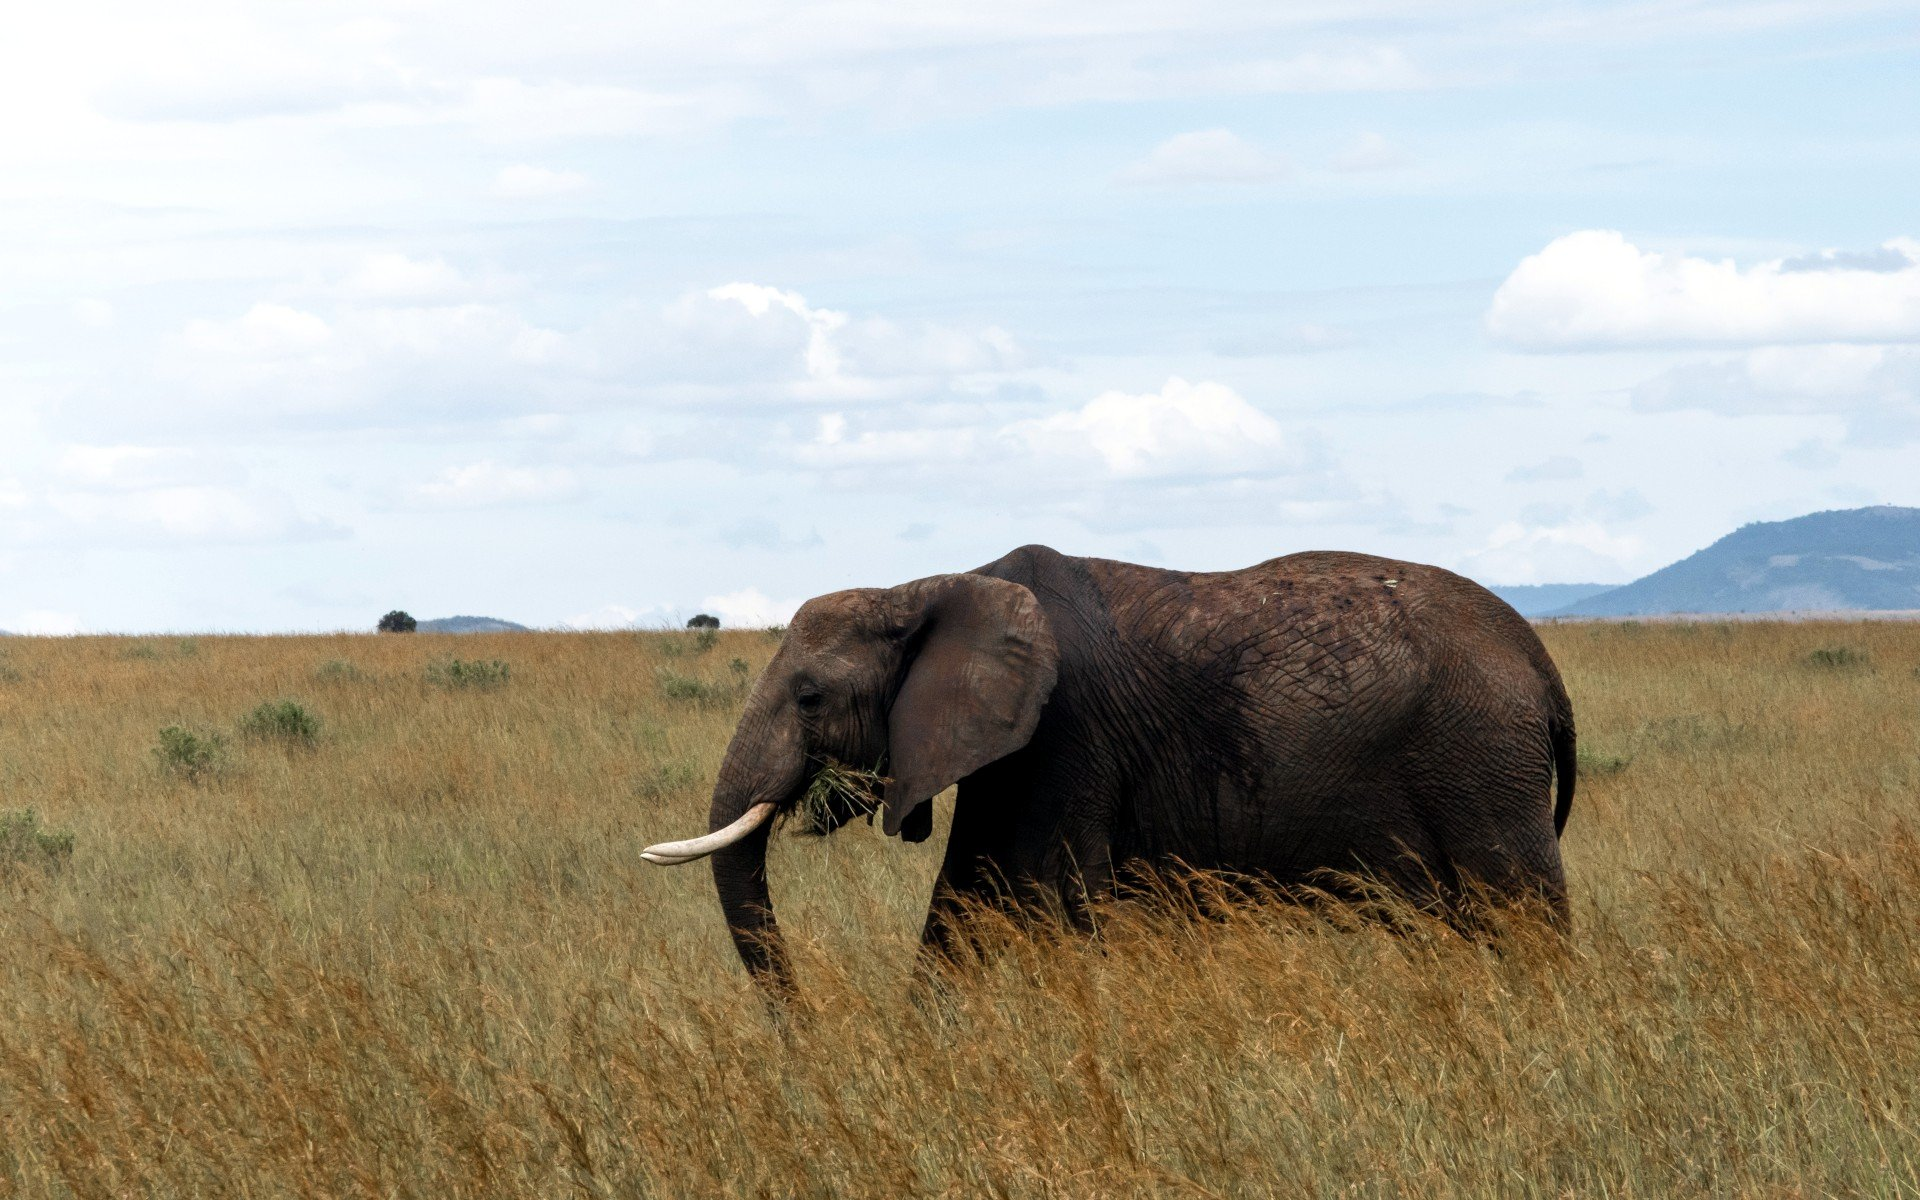 Places to spot Elephants: Himba Hills, Aberdare National Park, and Masai Mara National Park.